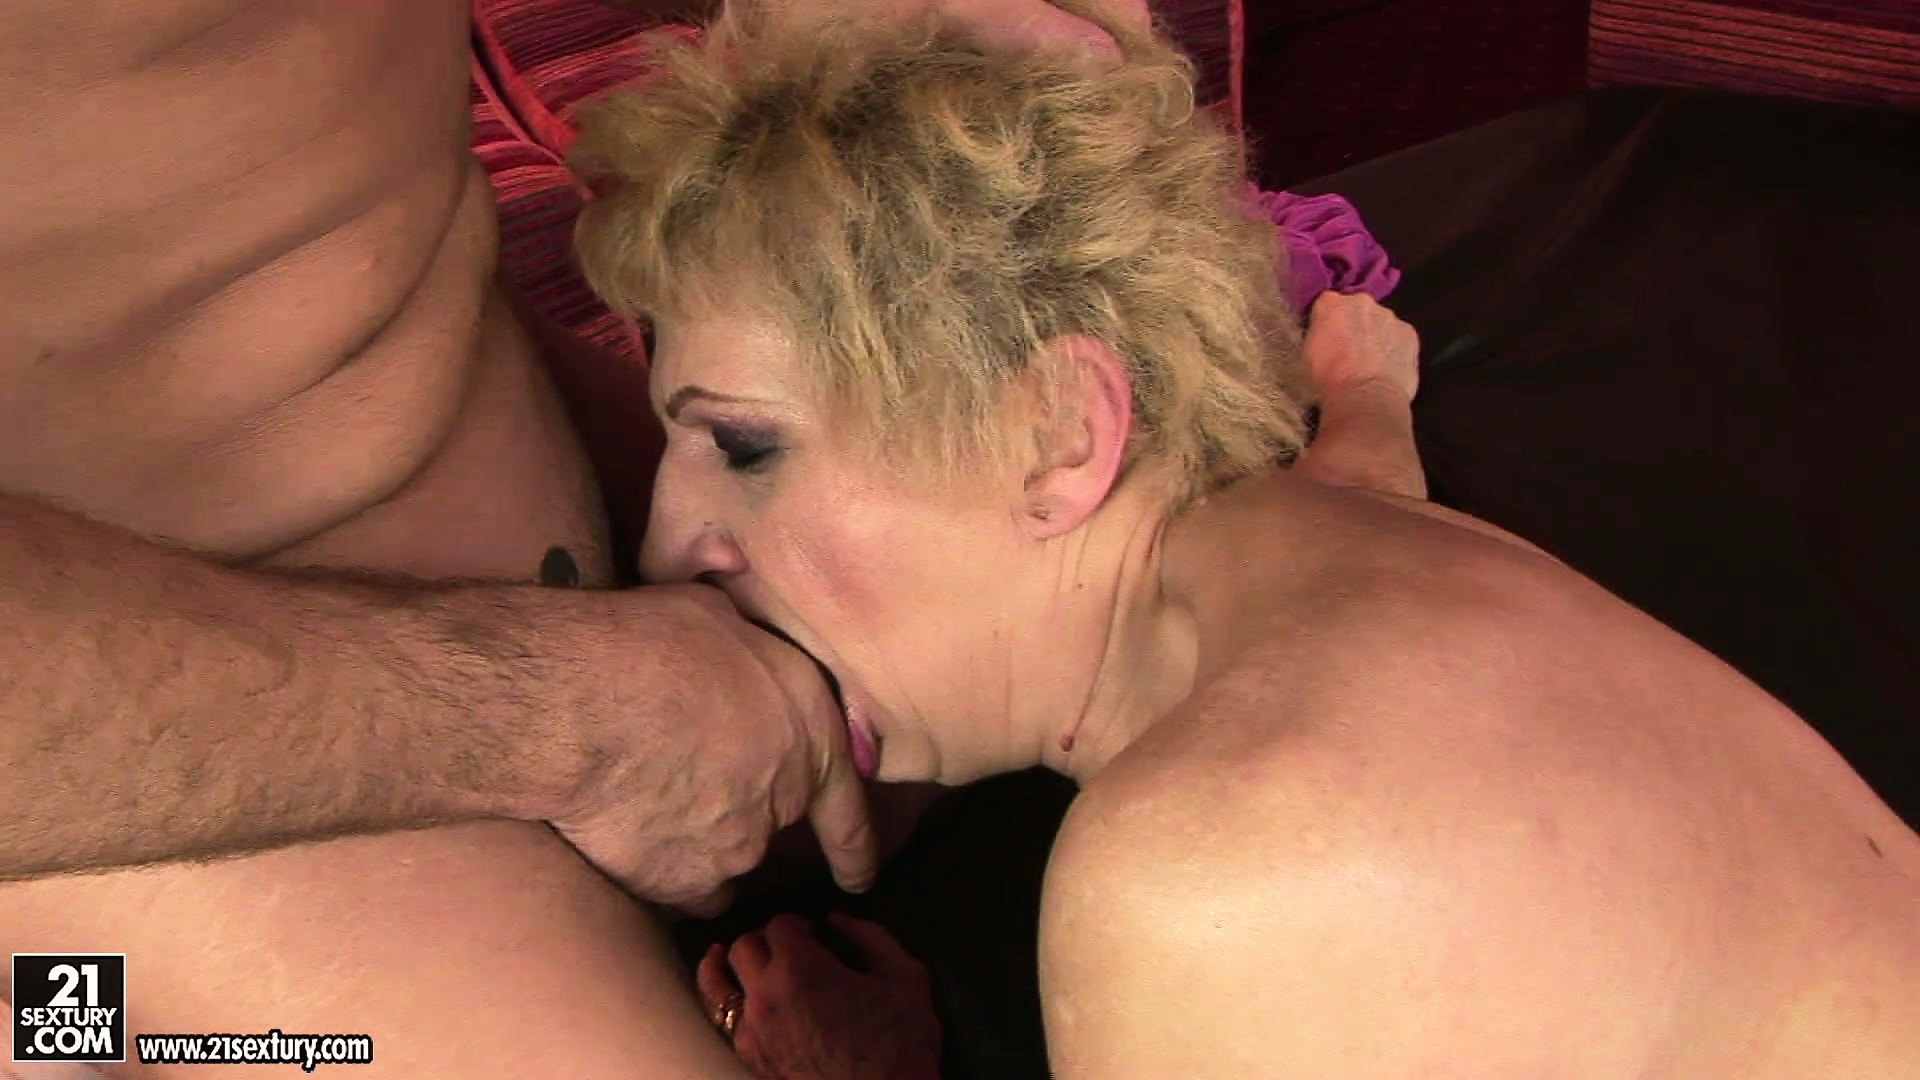 Sexy penis cunt pornos movie